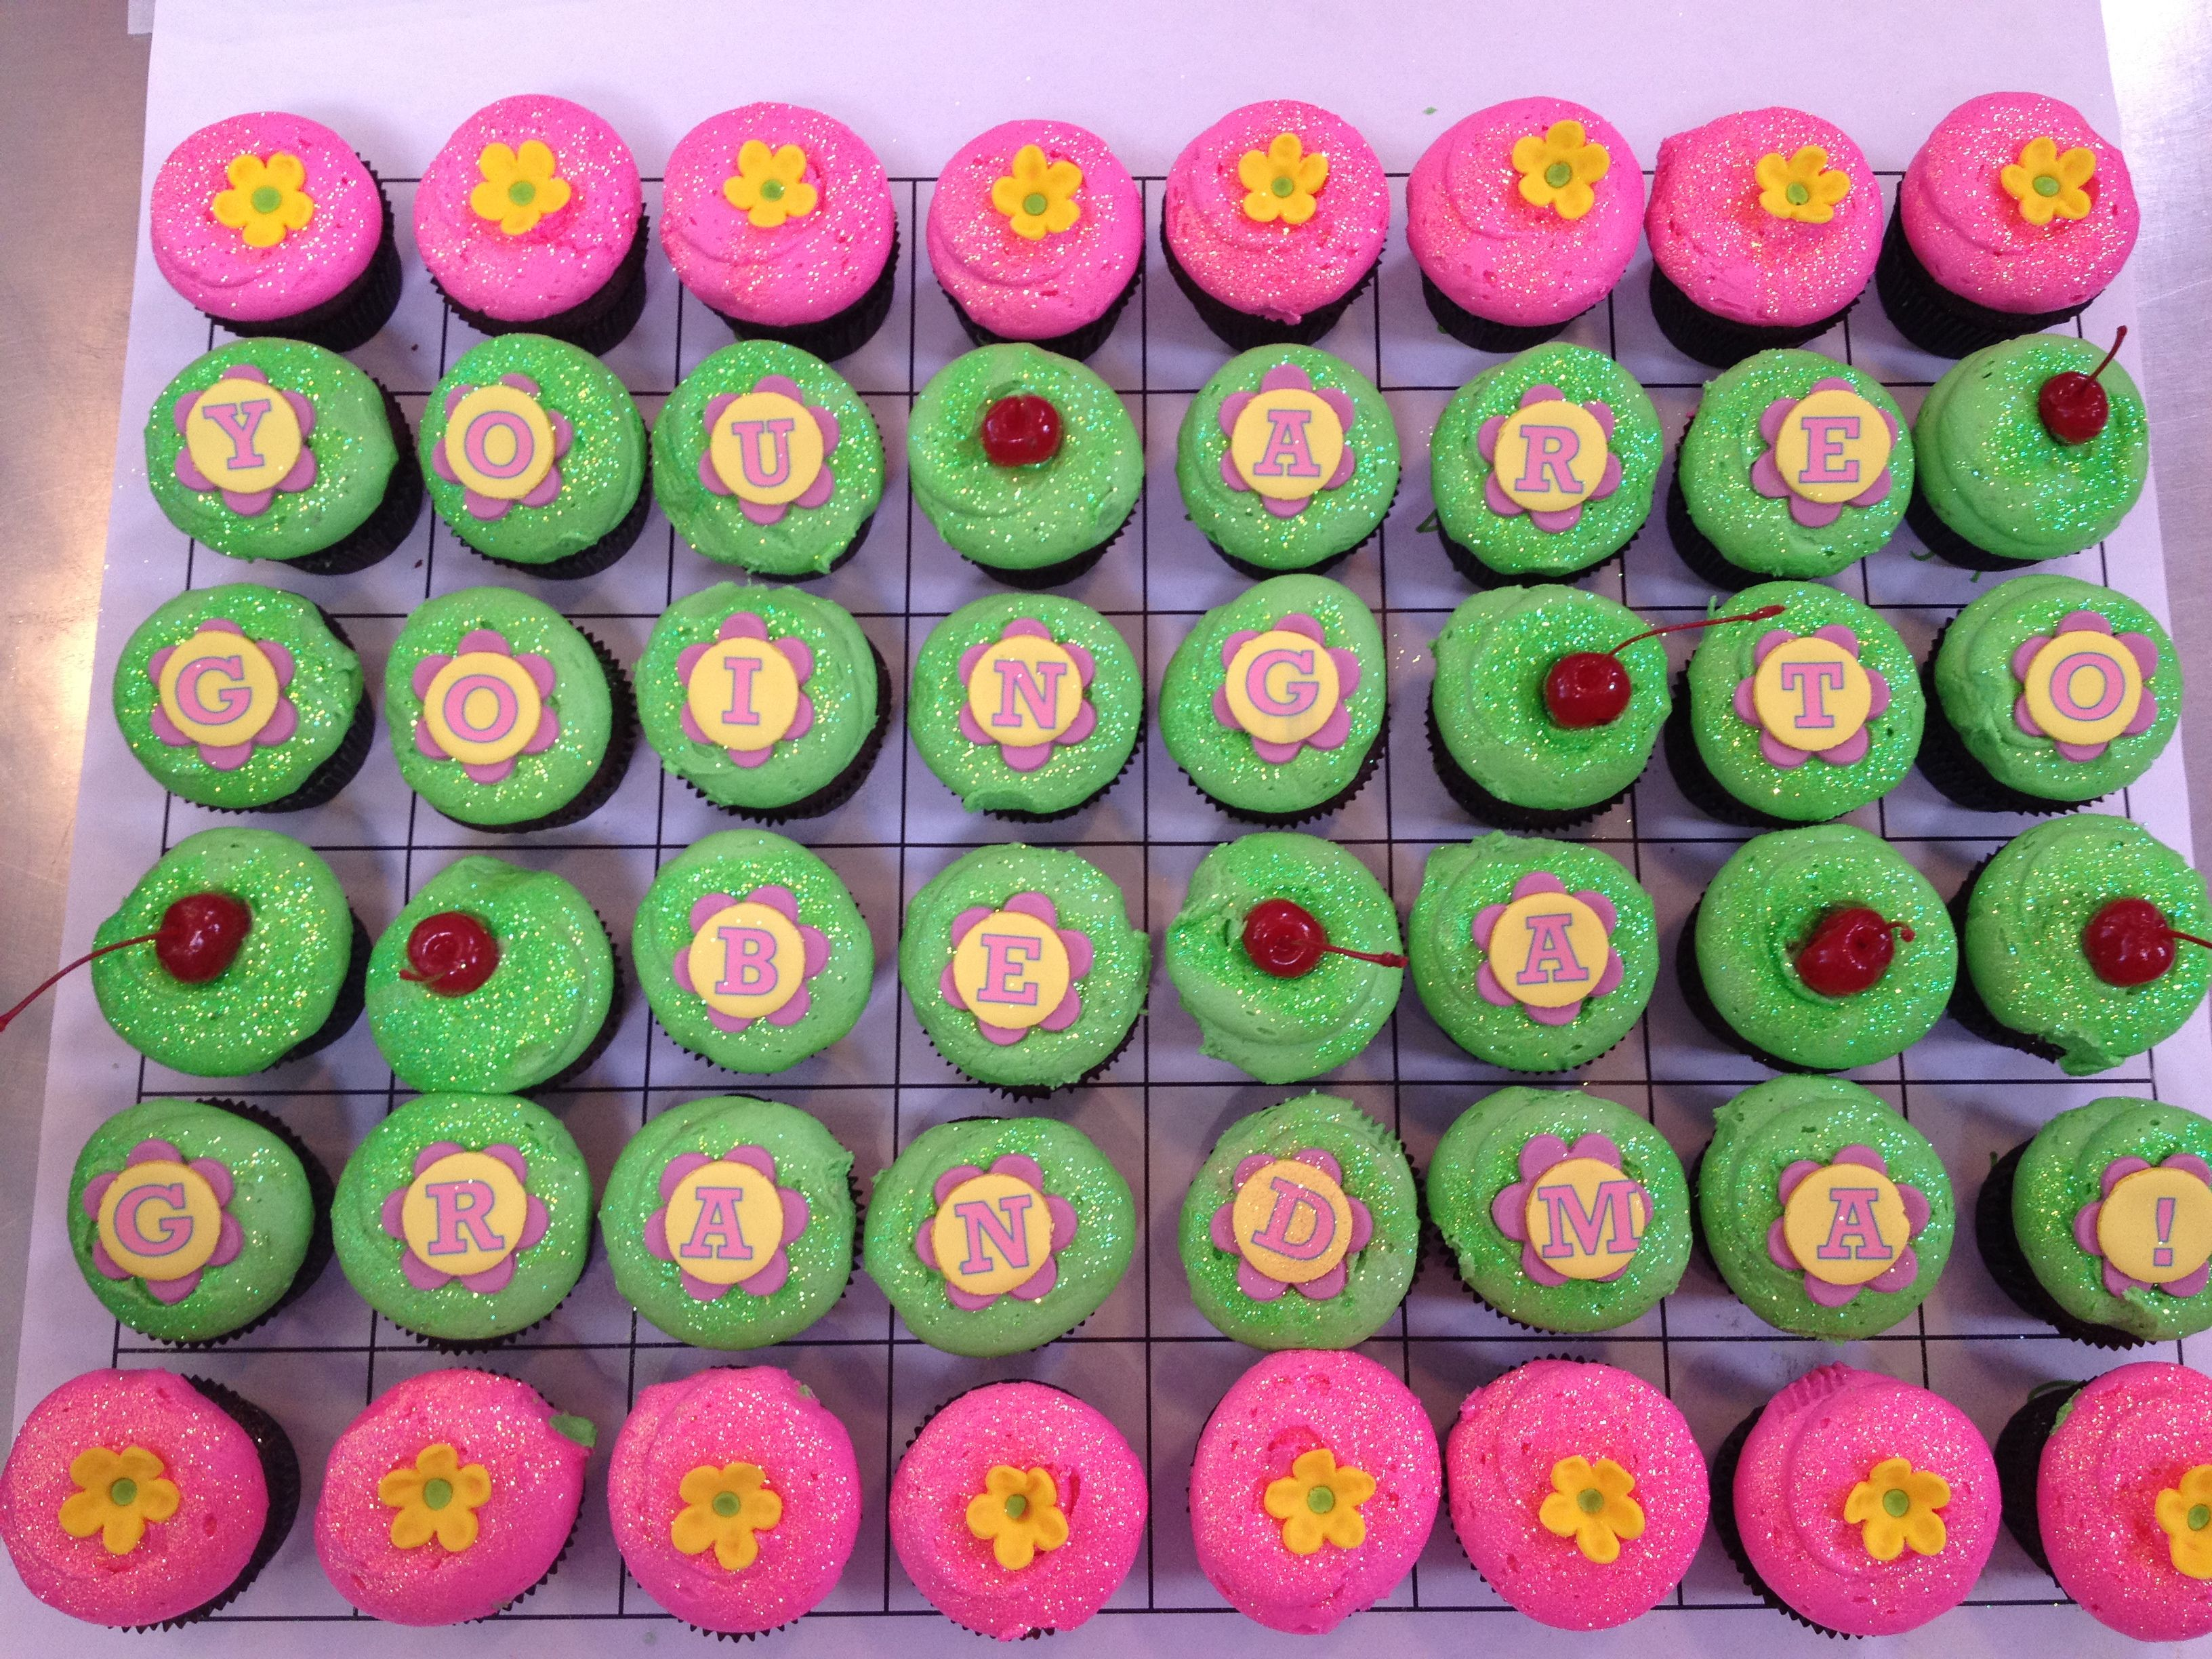 Cupcake Puzzle By Georgetown DC Cupcakes Episode Wicked Good Showdown